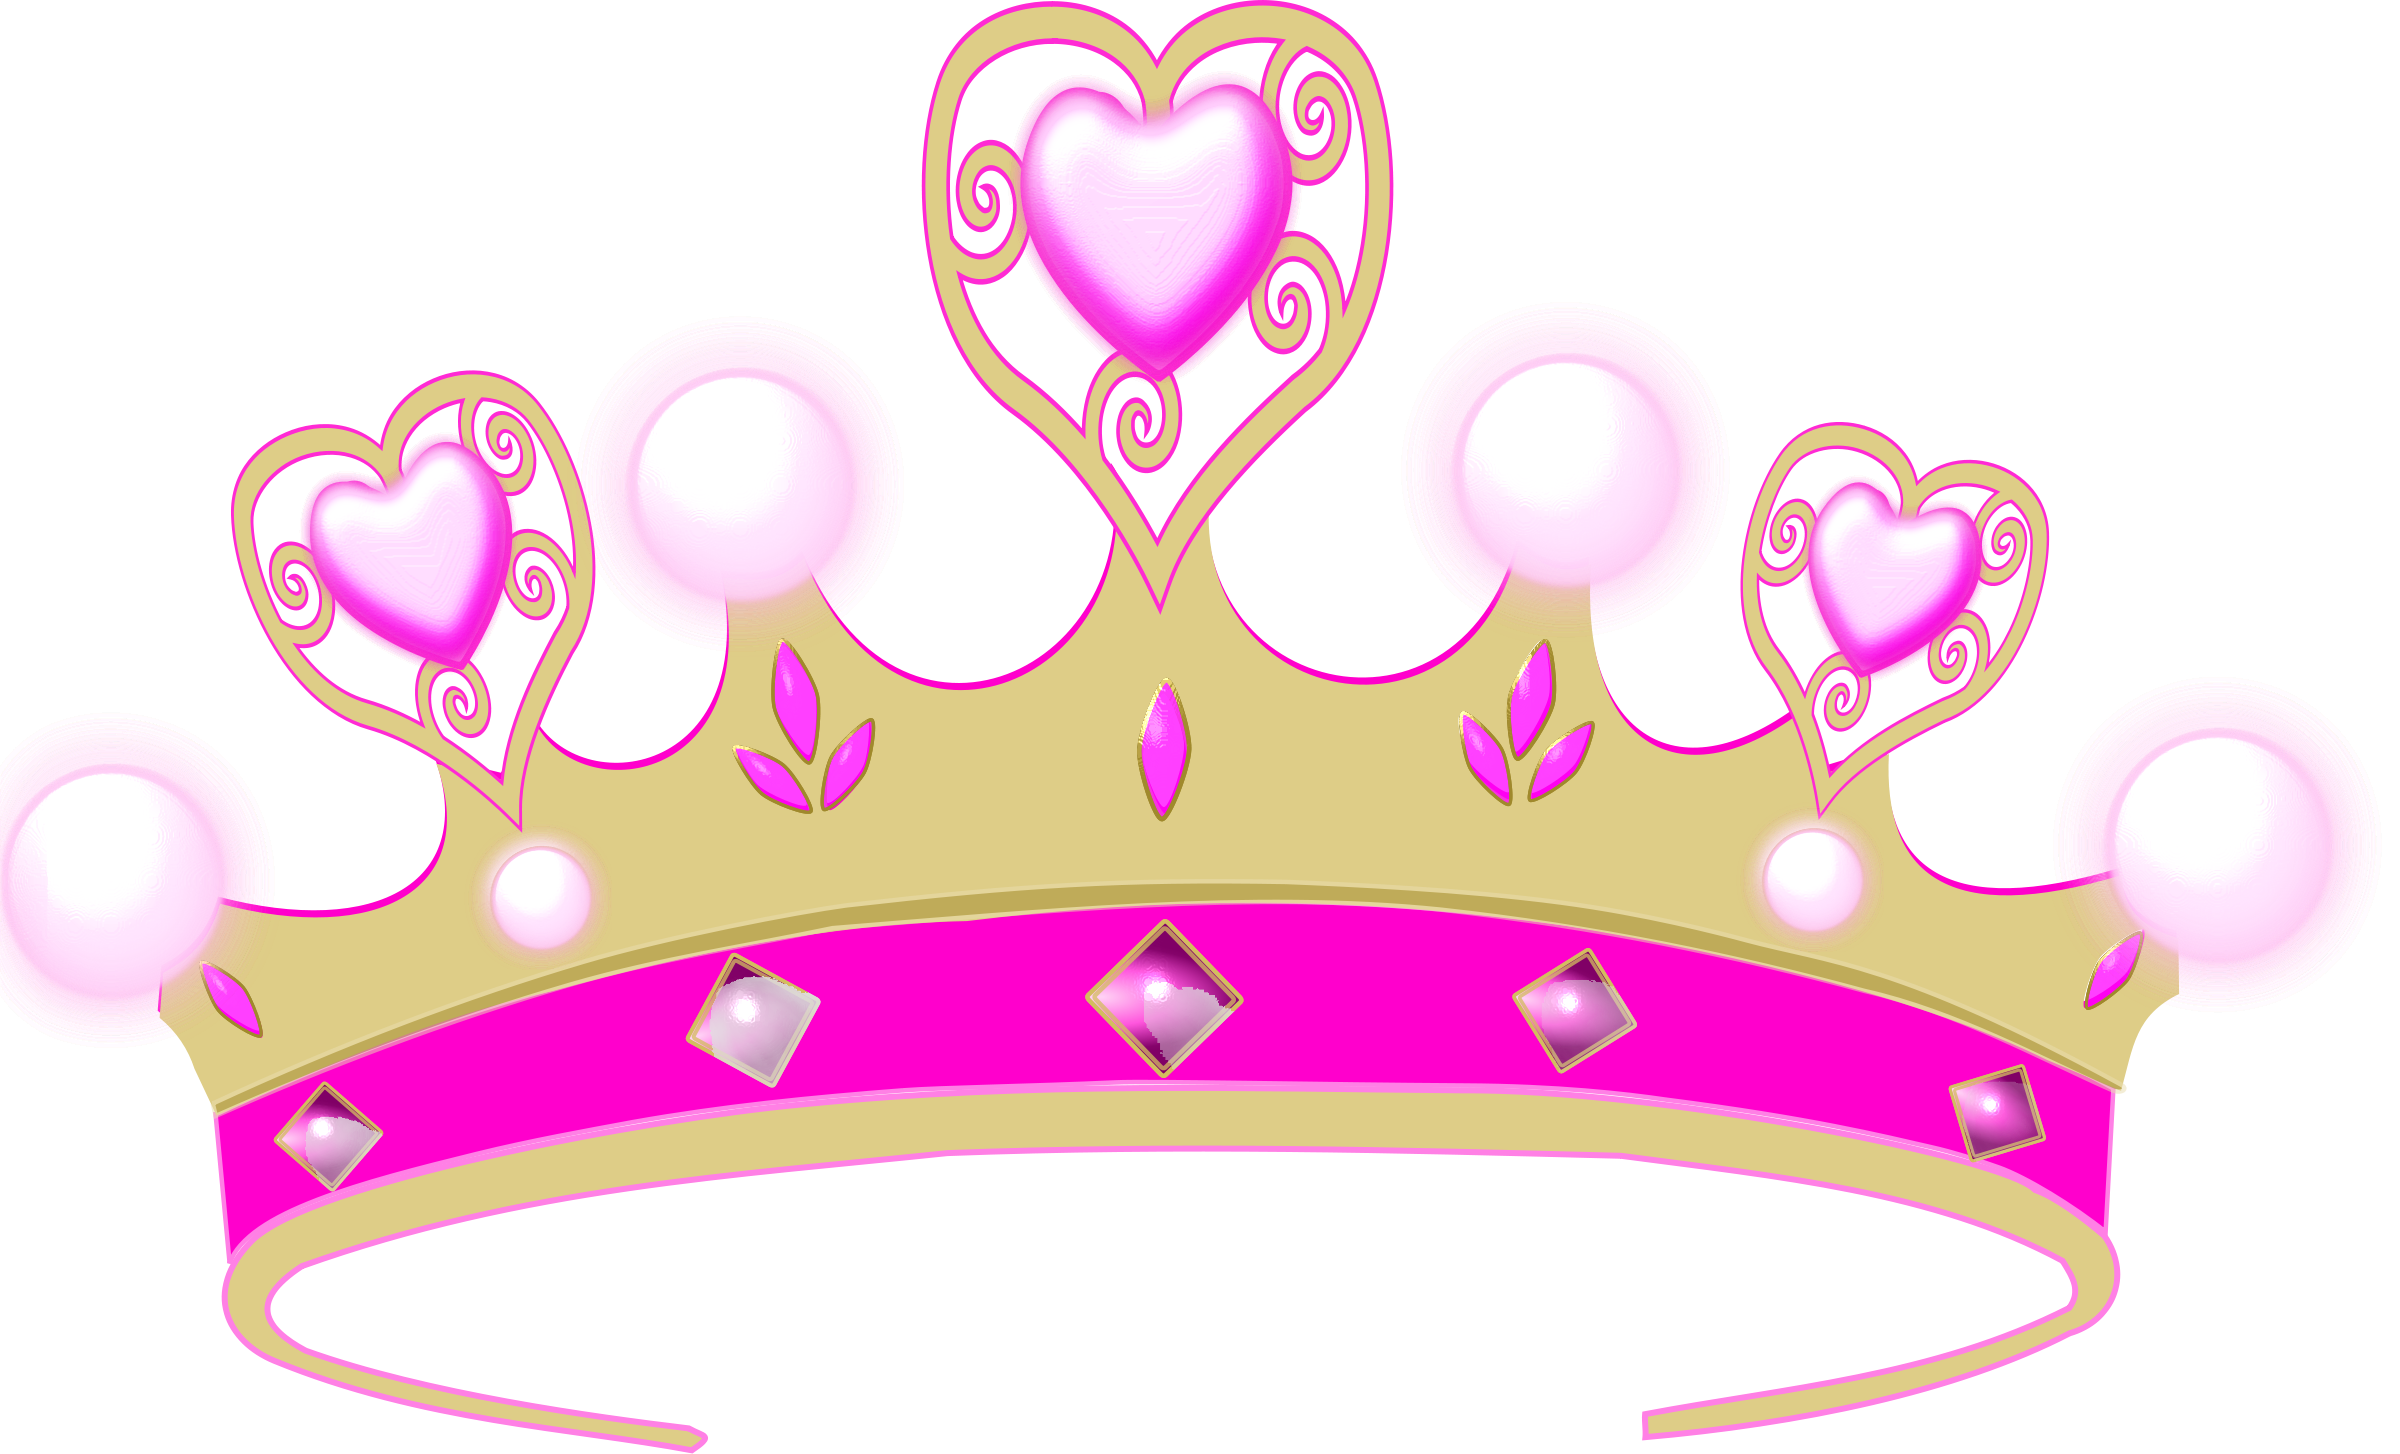 Crown clipart border picture transparent download 28+ Collection of Crown Clipart Pink | High quality, free cliparts ... picture transparent download